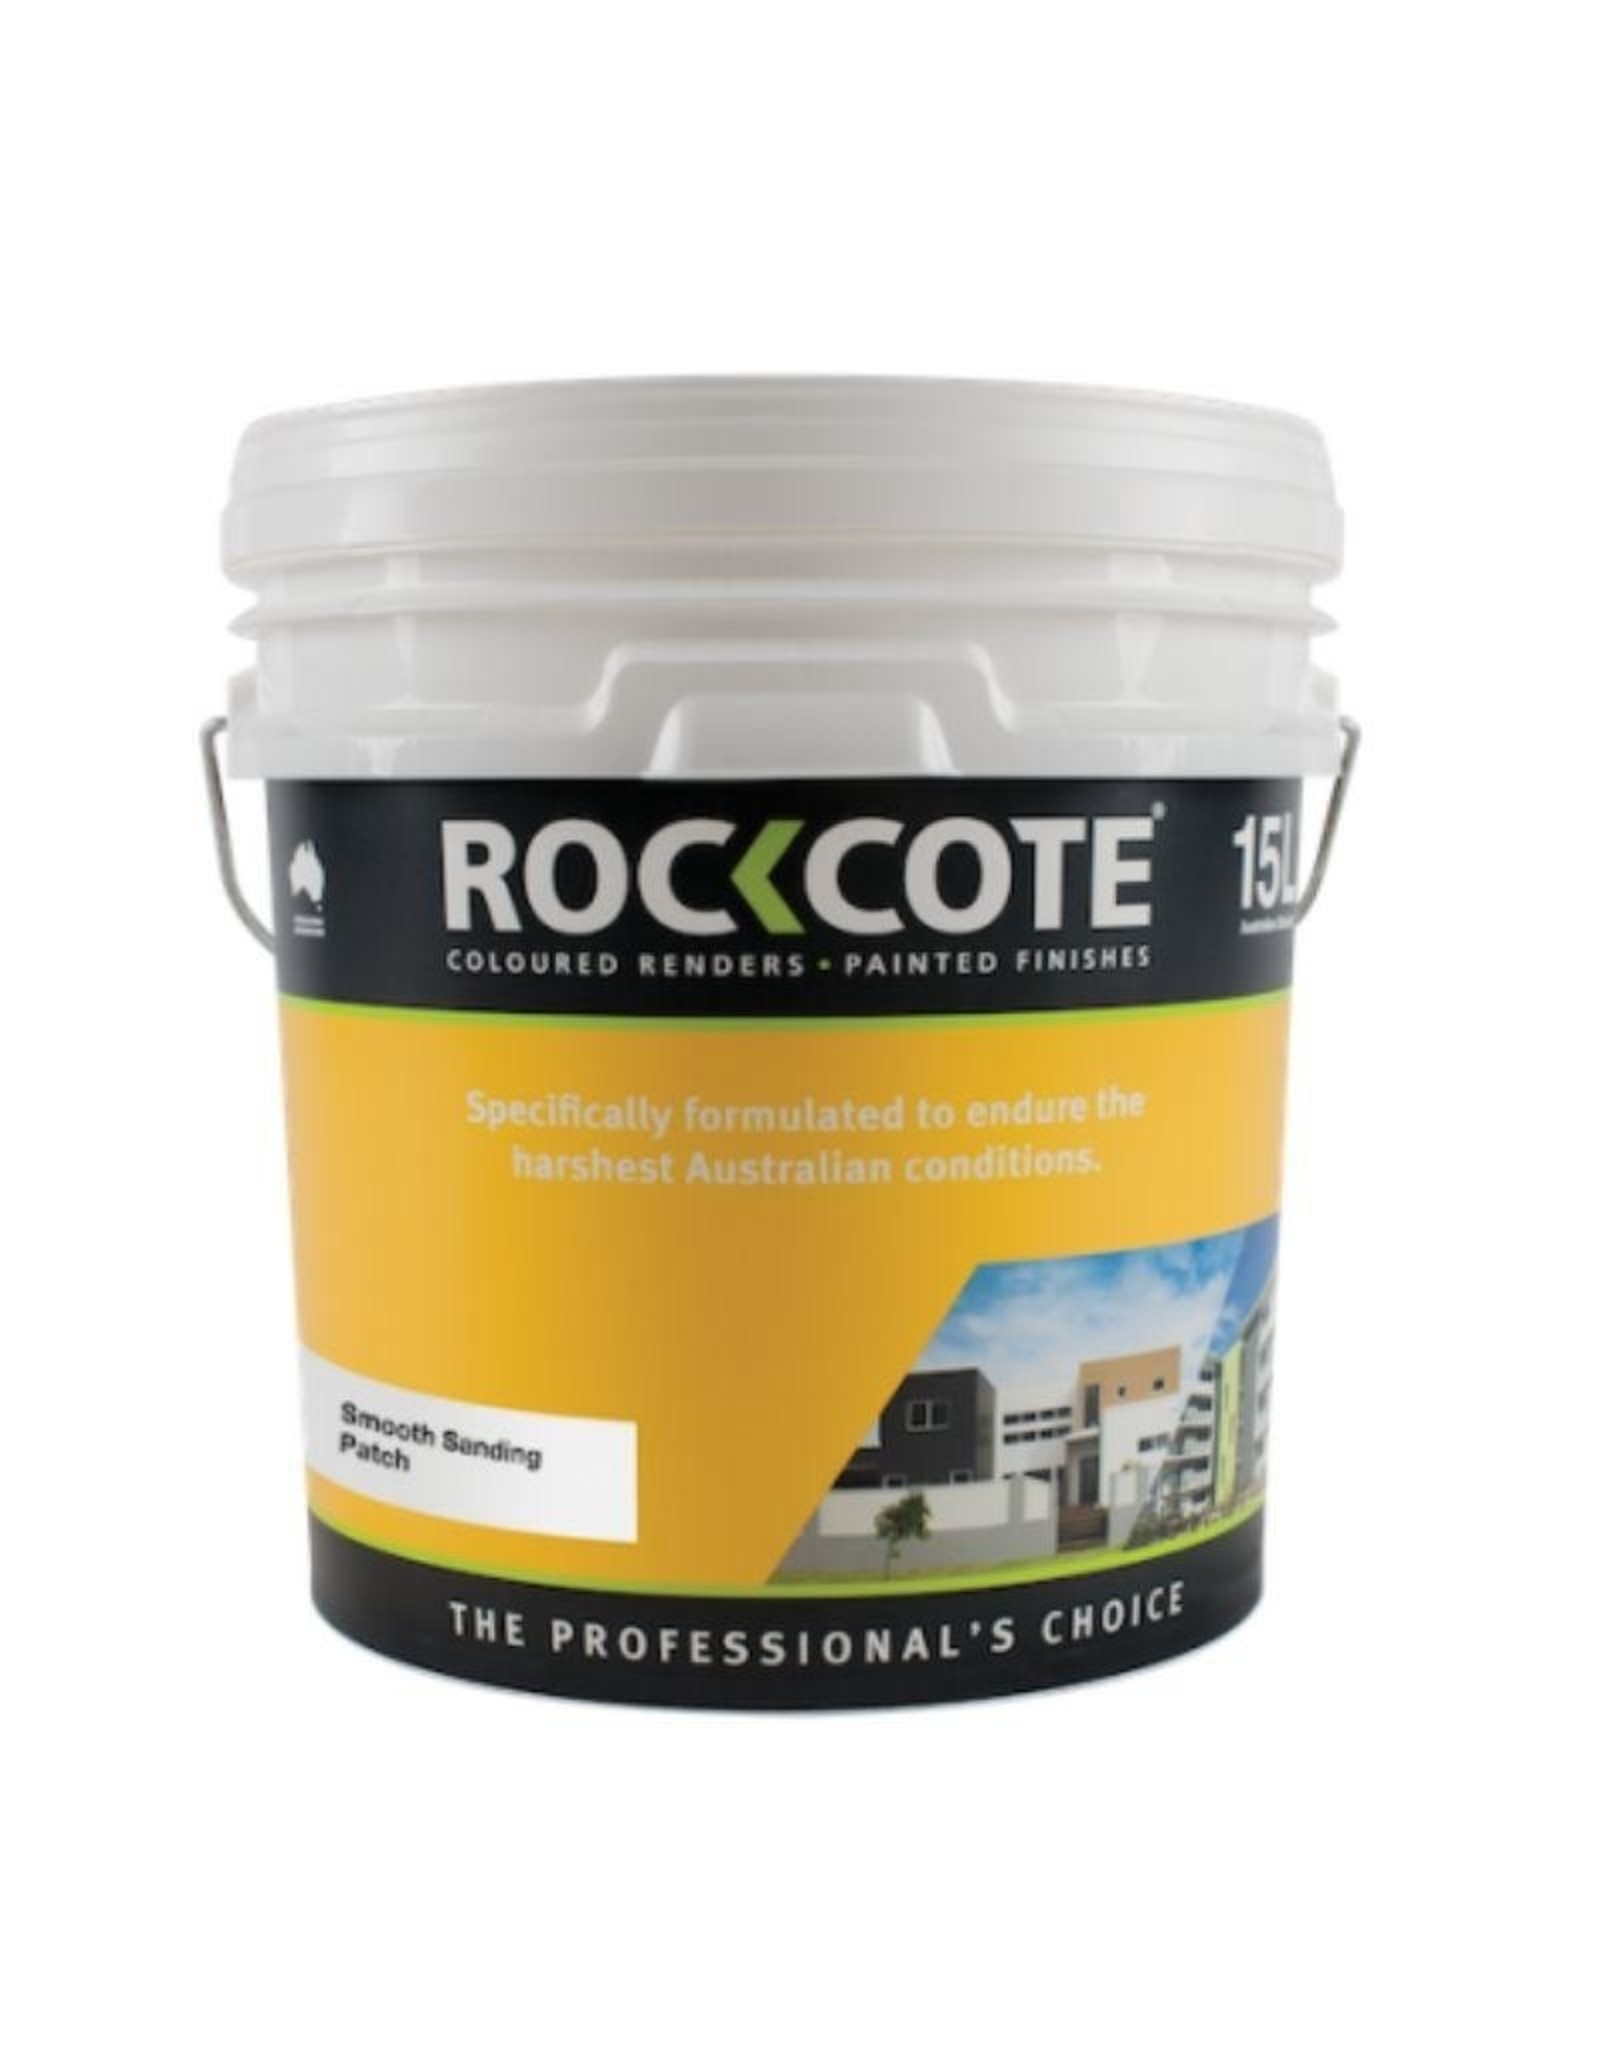 ROCKCOTE Smooth Sanding Patch 15L